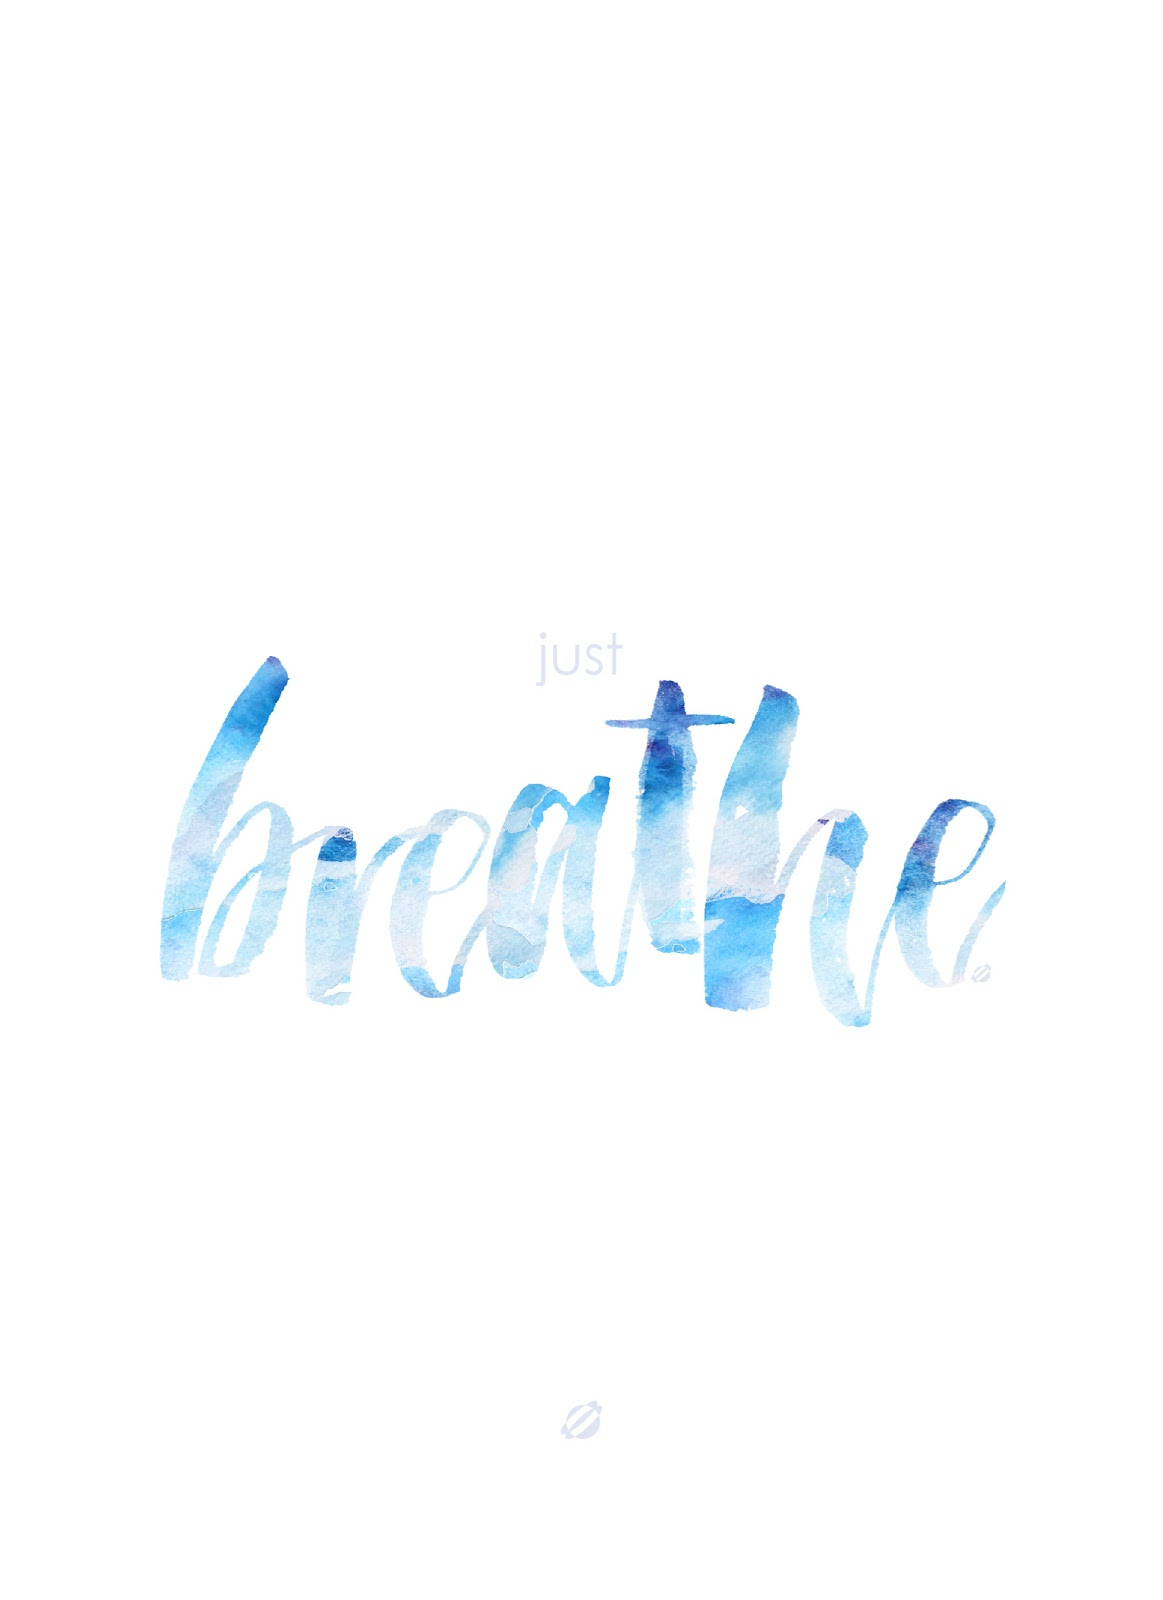 LostBumblebee ©2015 JUST BREATHE Free PRINTABLE | PERSONAL USE ONLY.